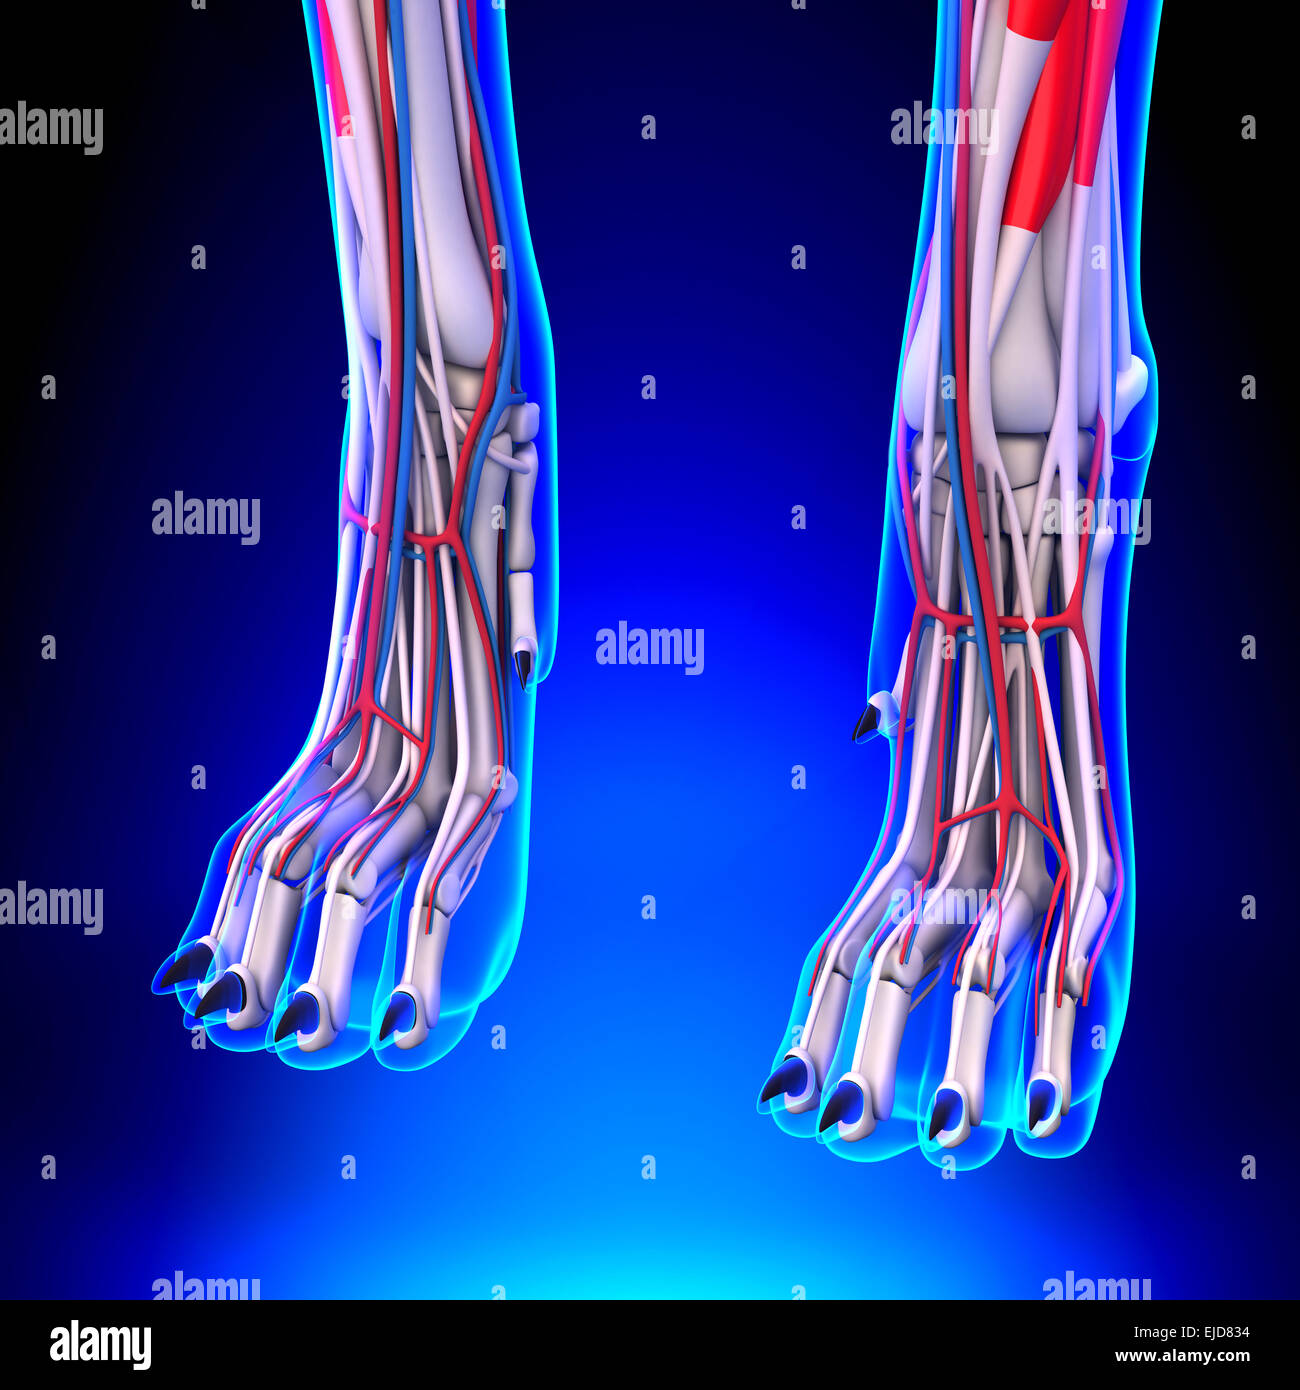 Dog Front Legs Anatomy with Circulatory System Stock Photo: 80197016 ...